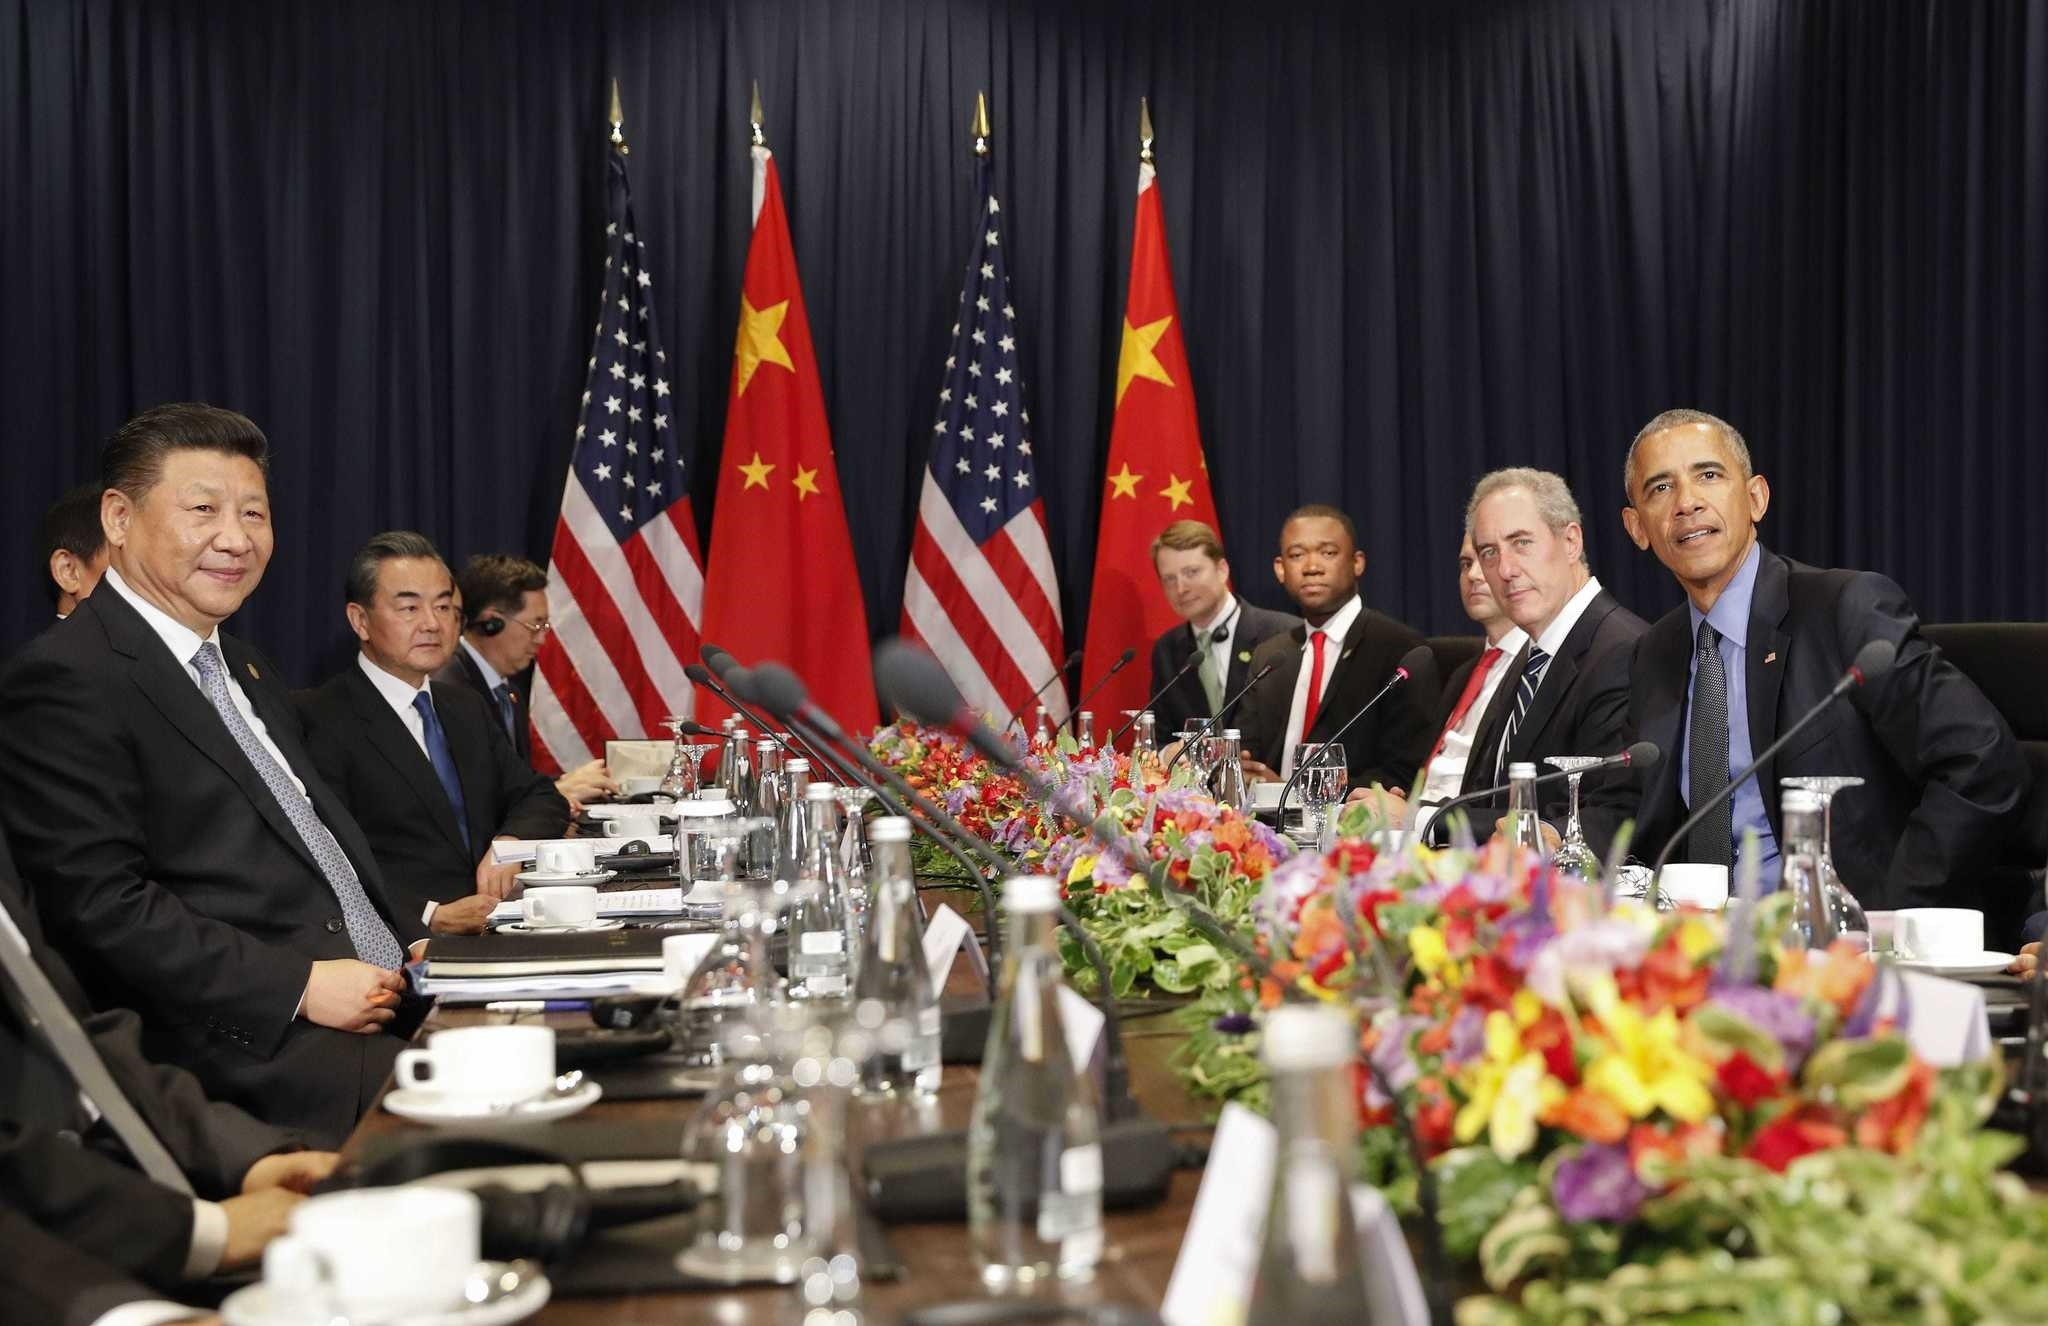 U.S. President Barack Obama (R) with Chinau2019s President Xi Jingping and members of their delegations, during their meeting as part of the Asia-Pacific Economic Cooperation (APEC) in Lima, Peru.